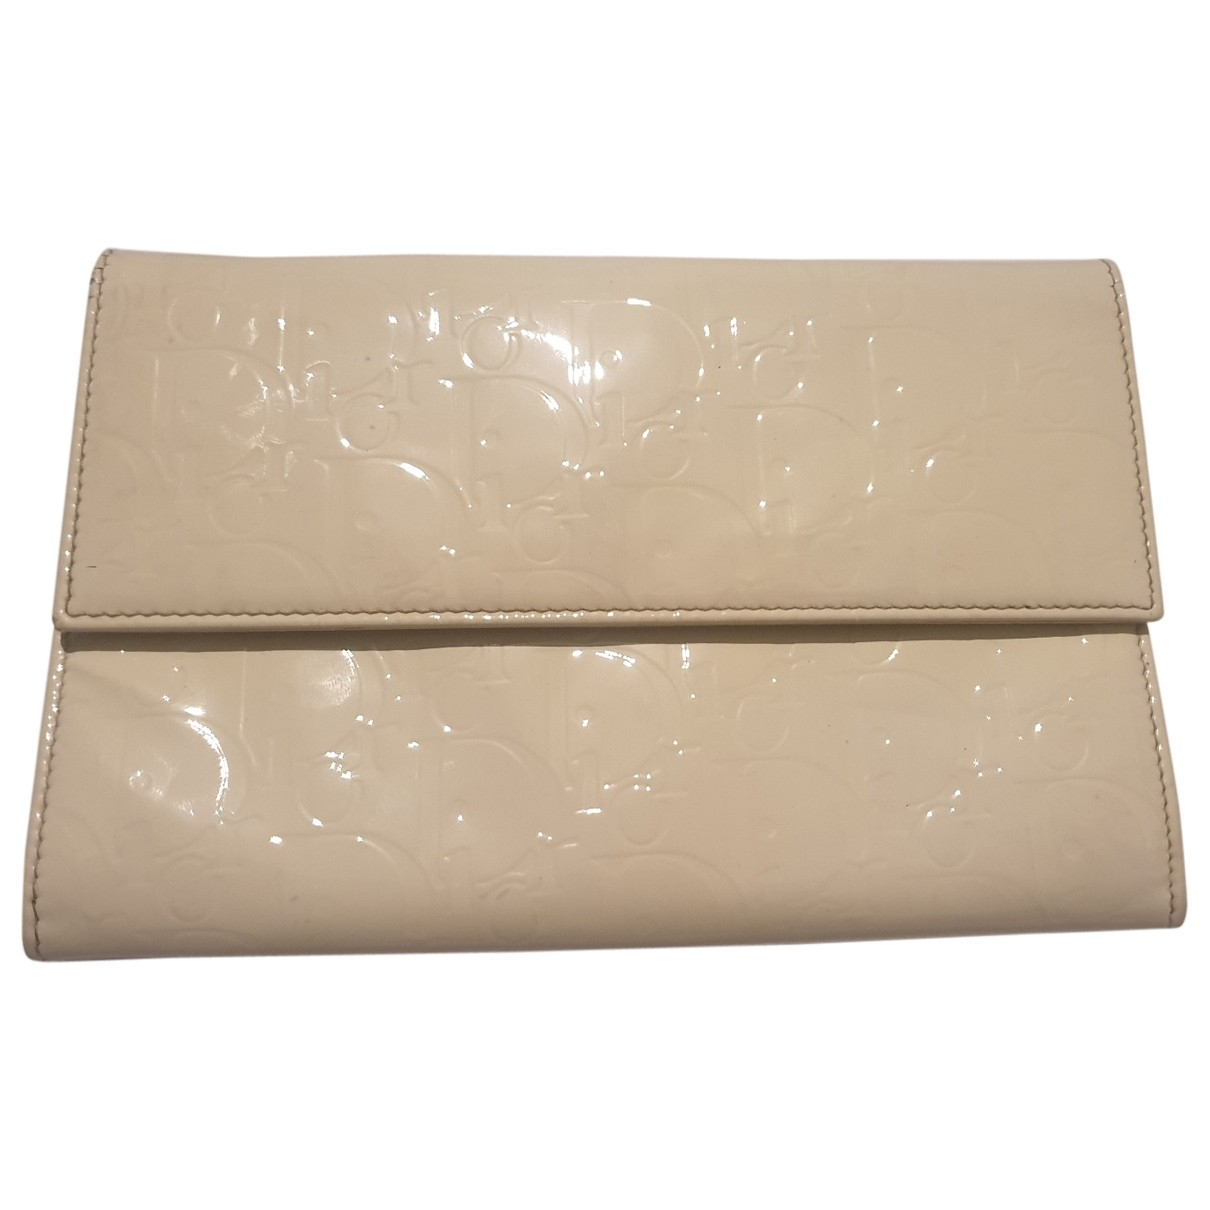 Dior \N White Patent leather wallet for Women \N